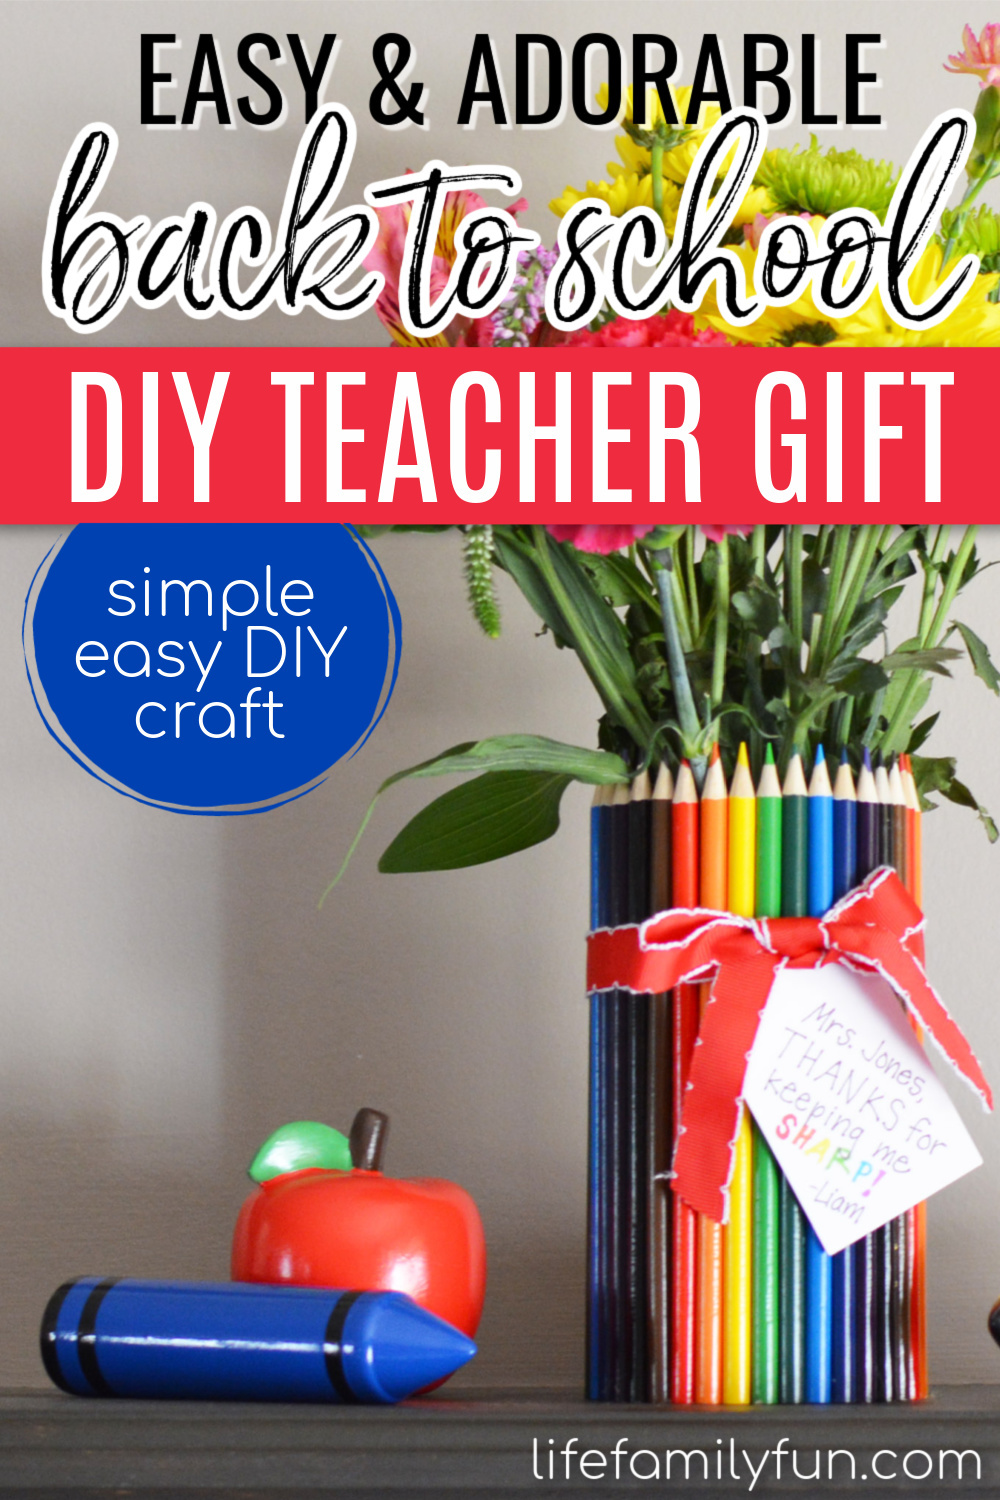 diy teacher gift with colored pencils, pinterest pin